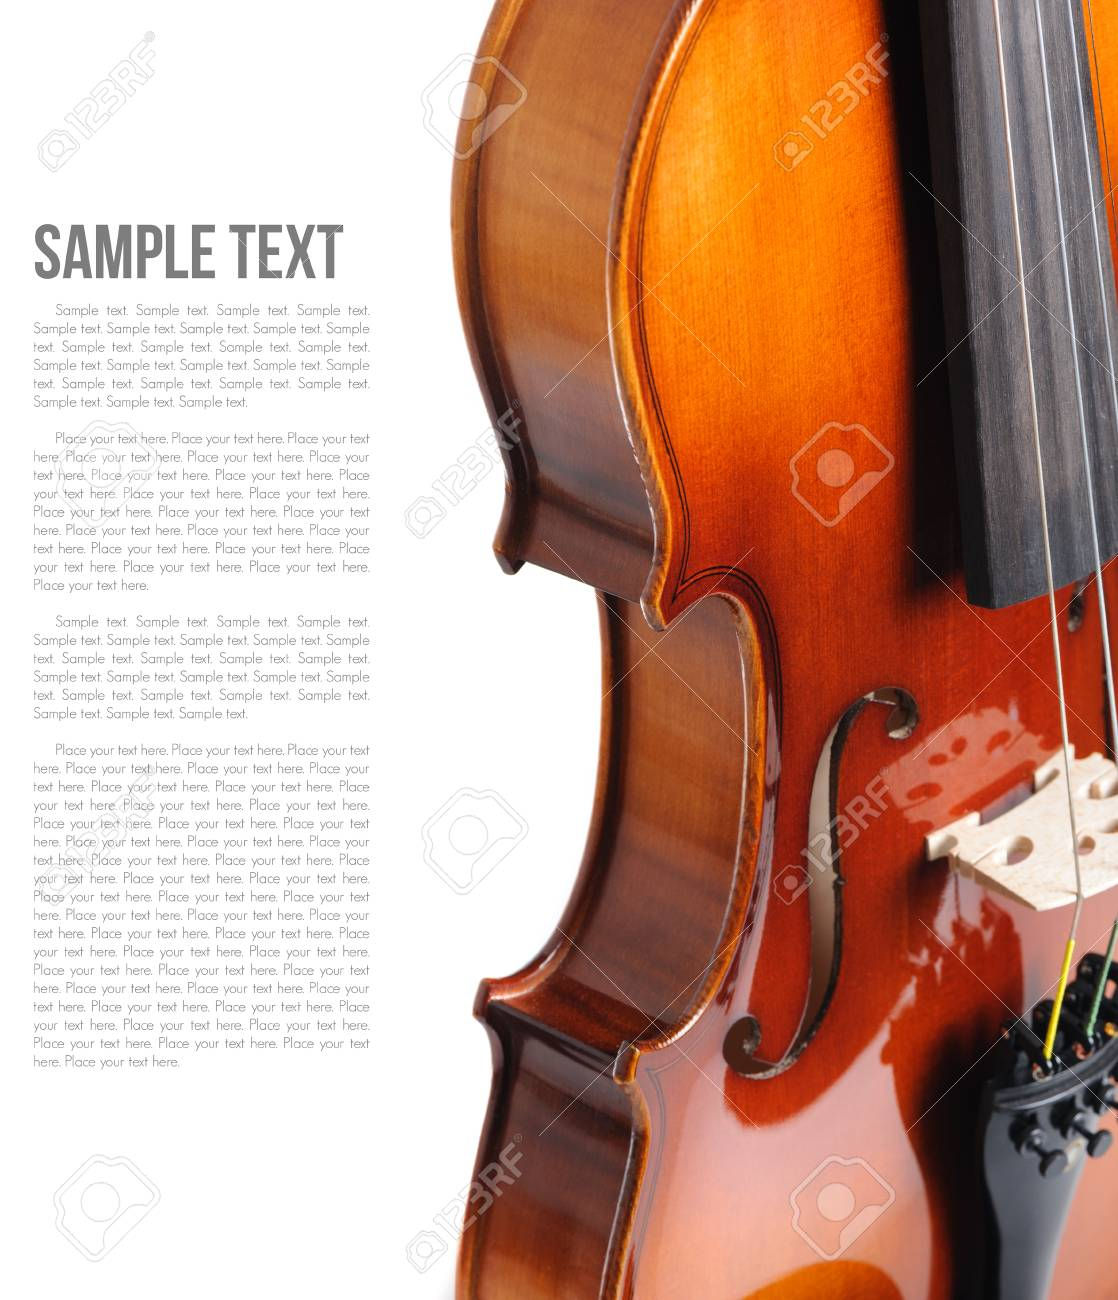 new classical violin on white background template stock photo